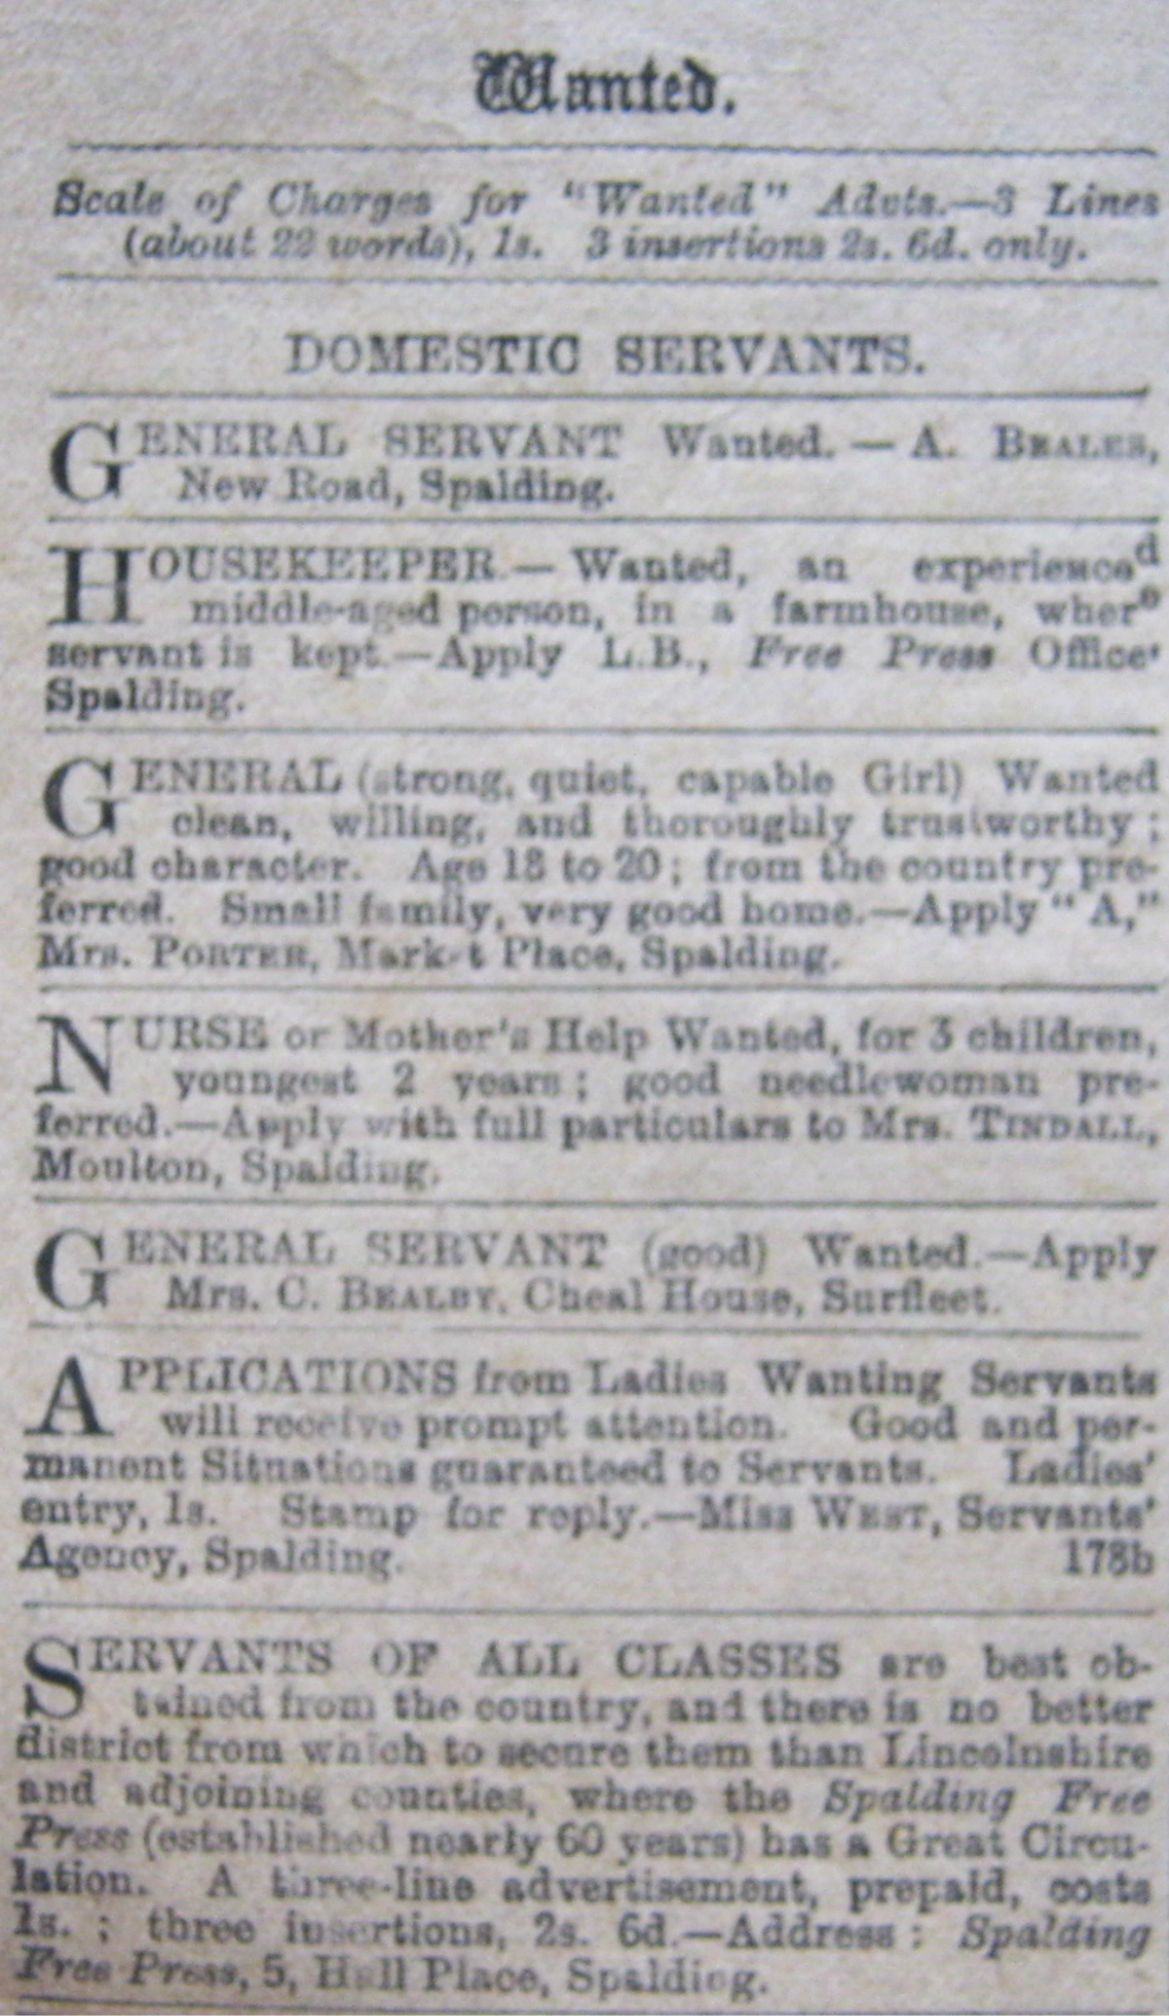 Wanted adverts in the Spalding Free Press Aug 16th 1904